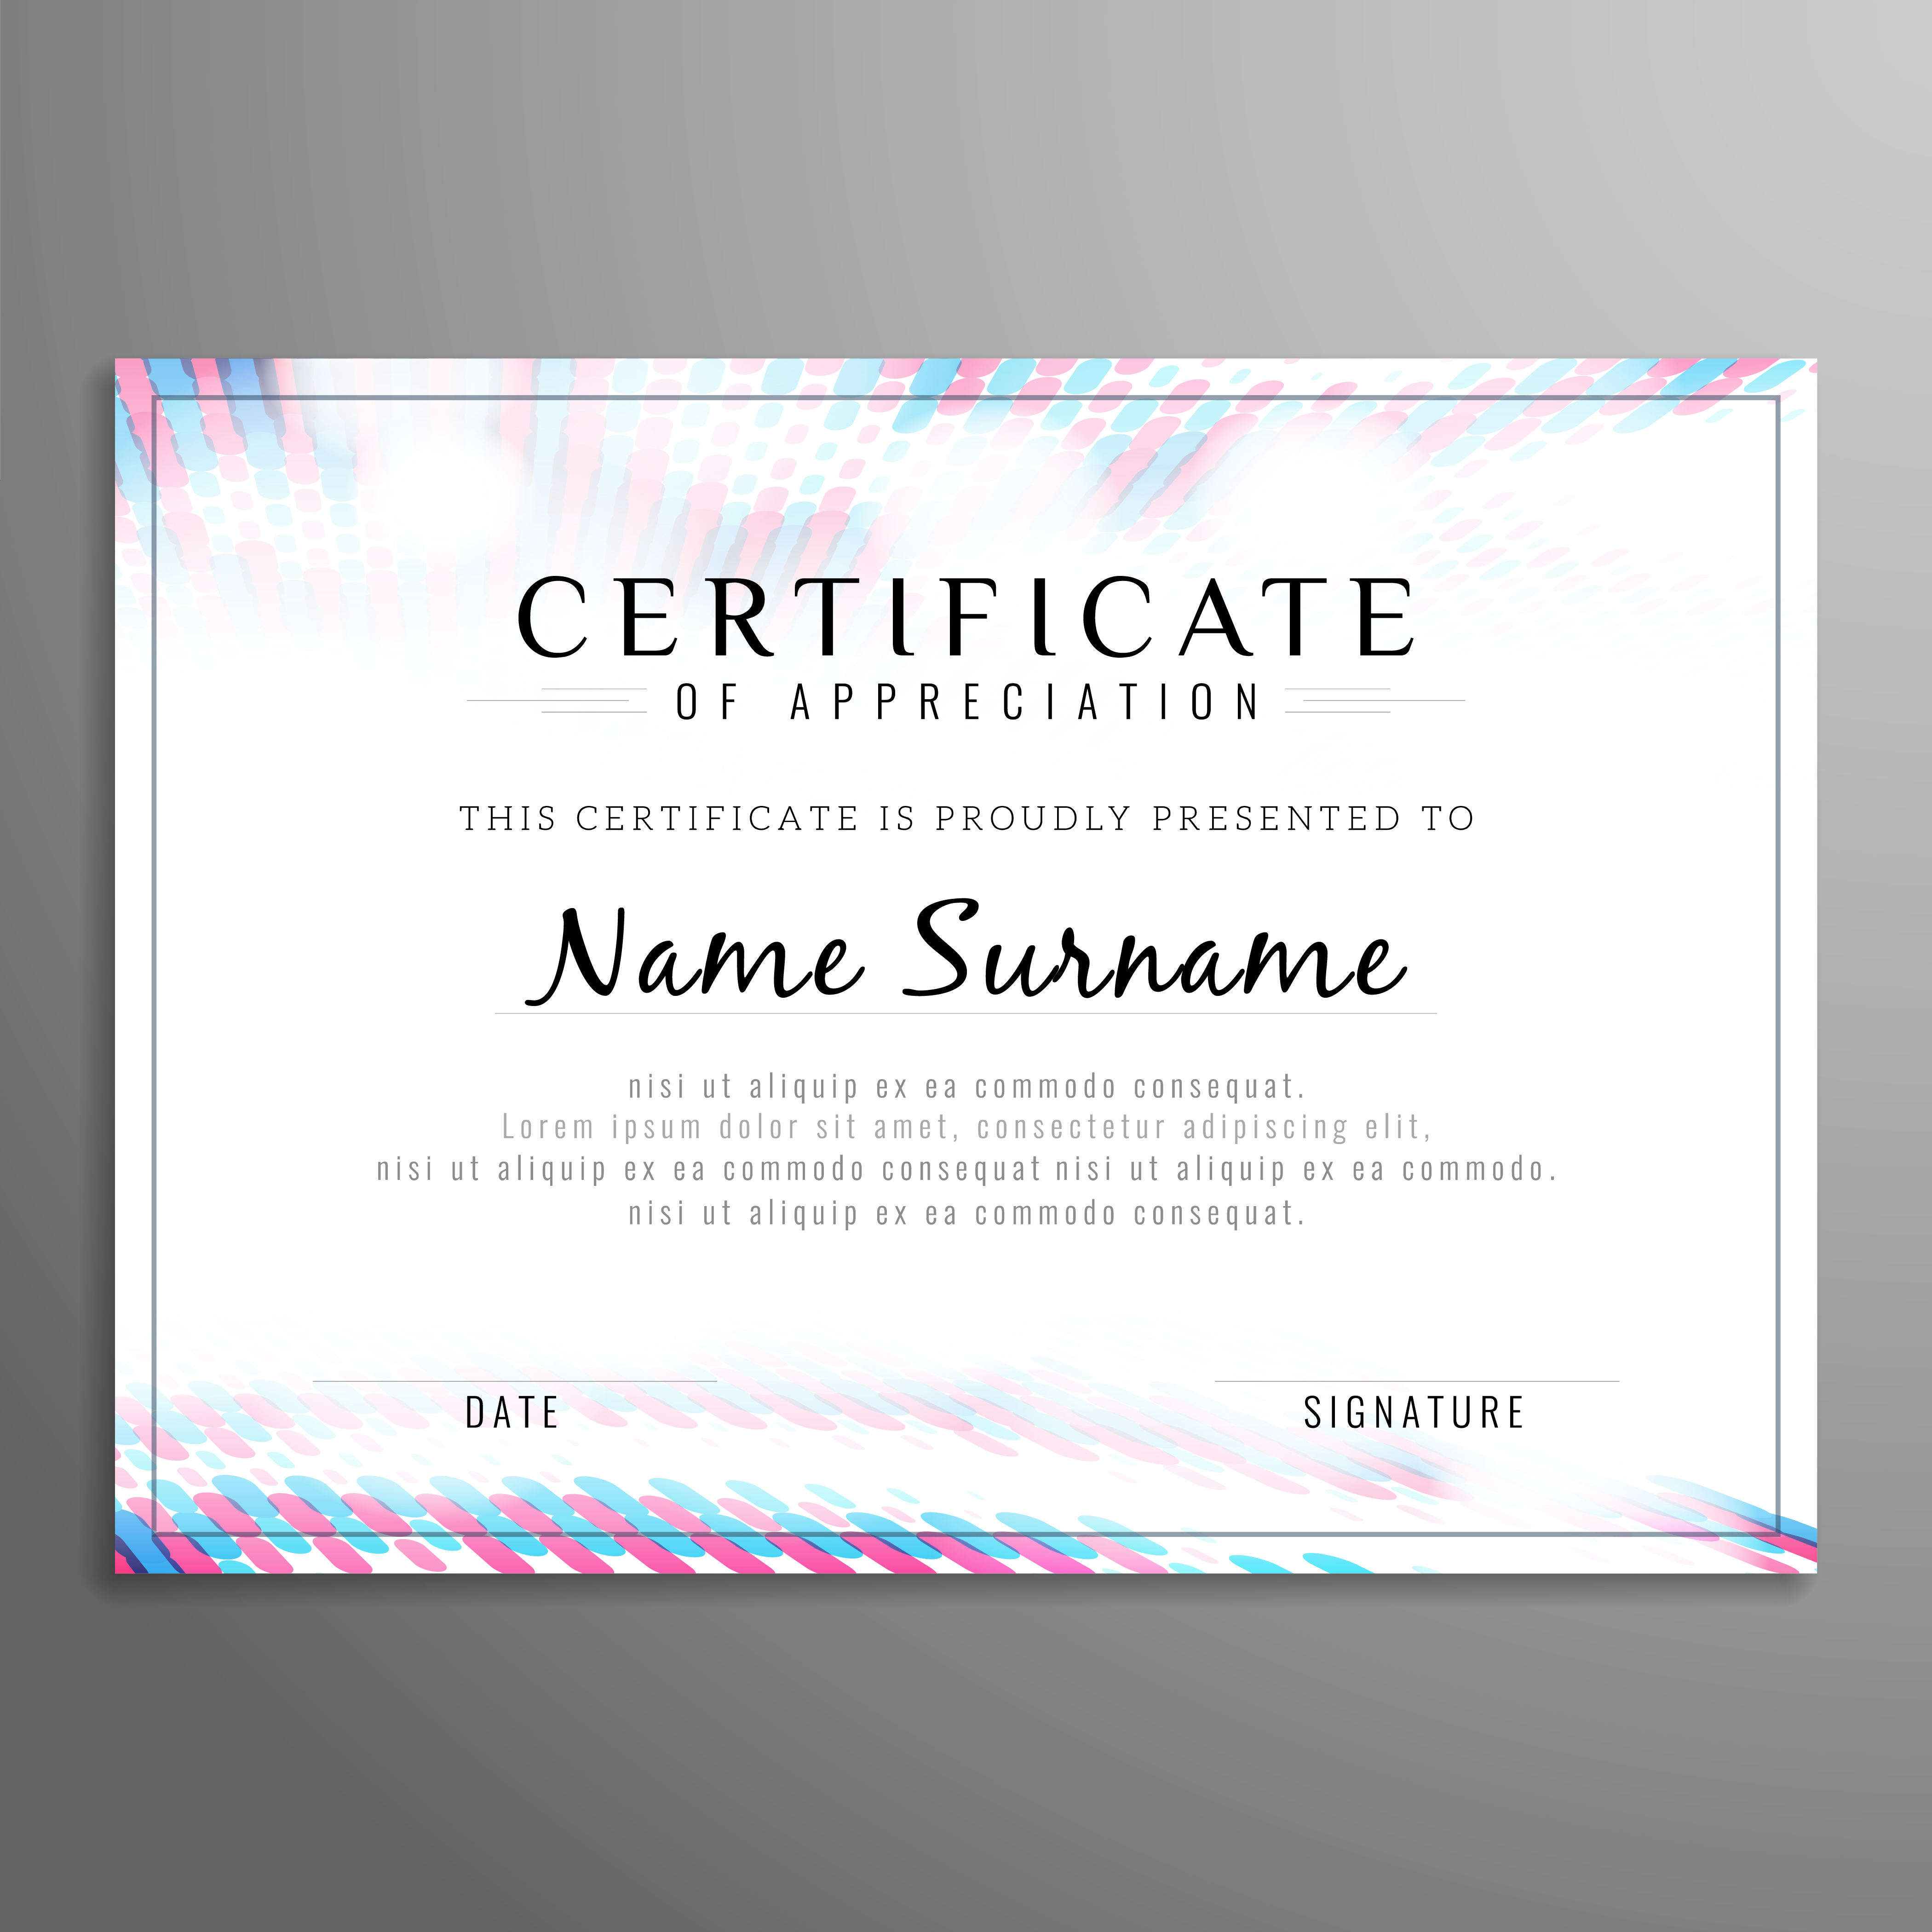 Abstract certificate background - Download Free Vector Art ...